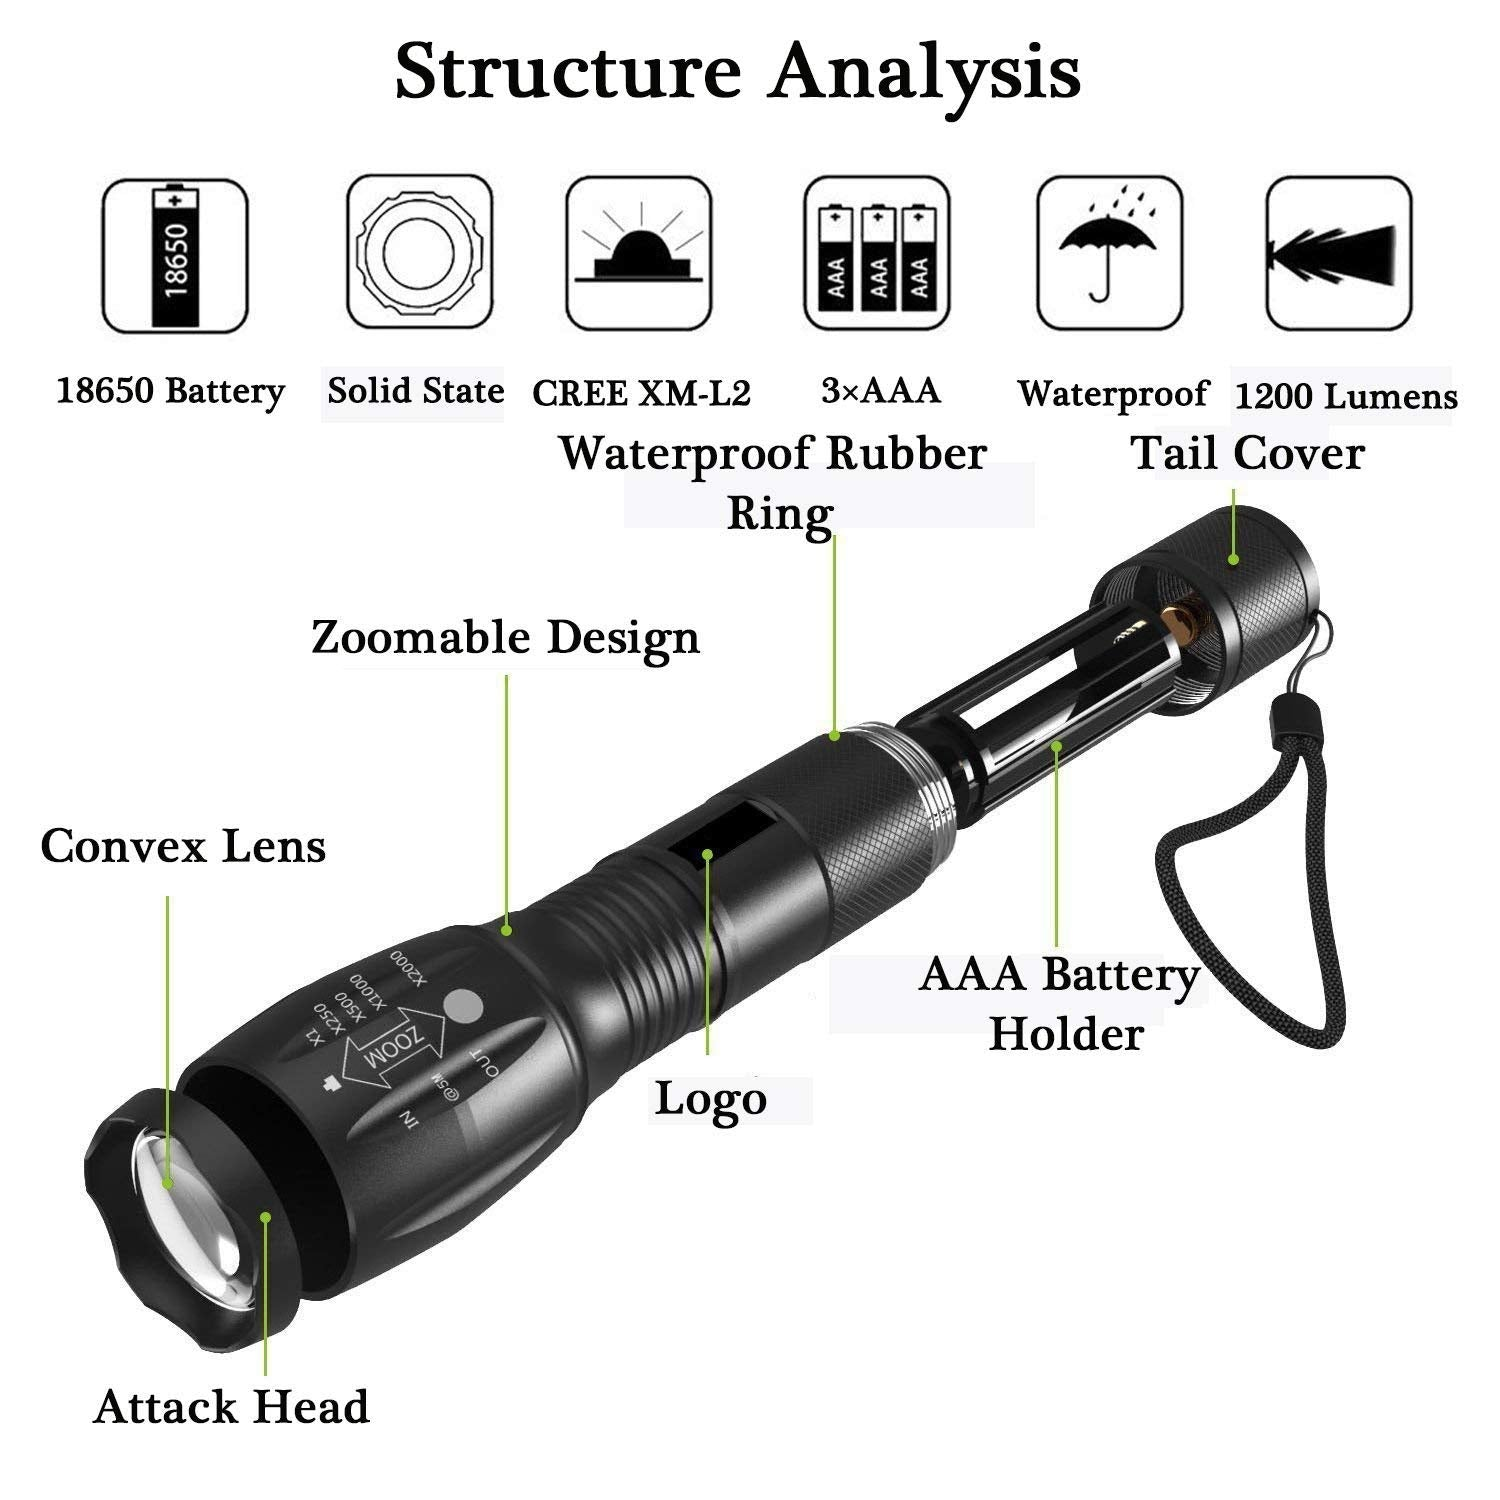 Tactical Flashlight Water Resistant 5 Modes & Zoom Function Ultra Bright Torch